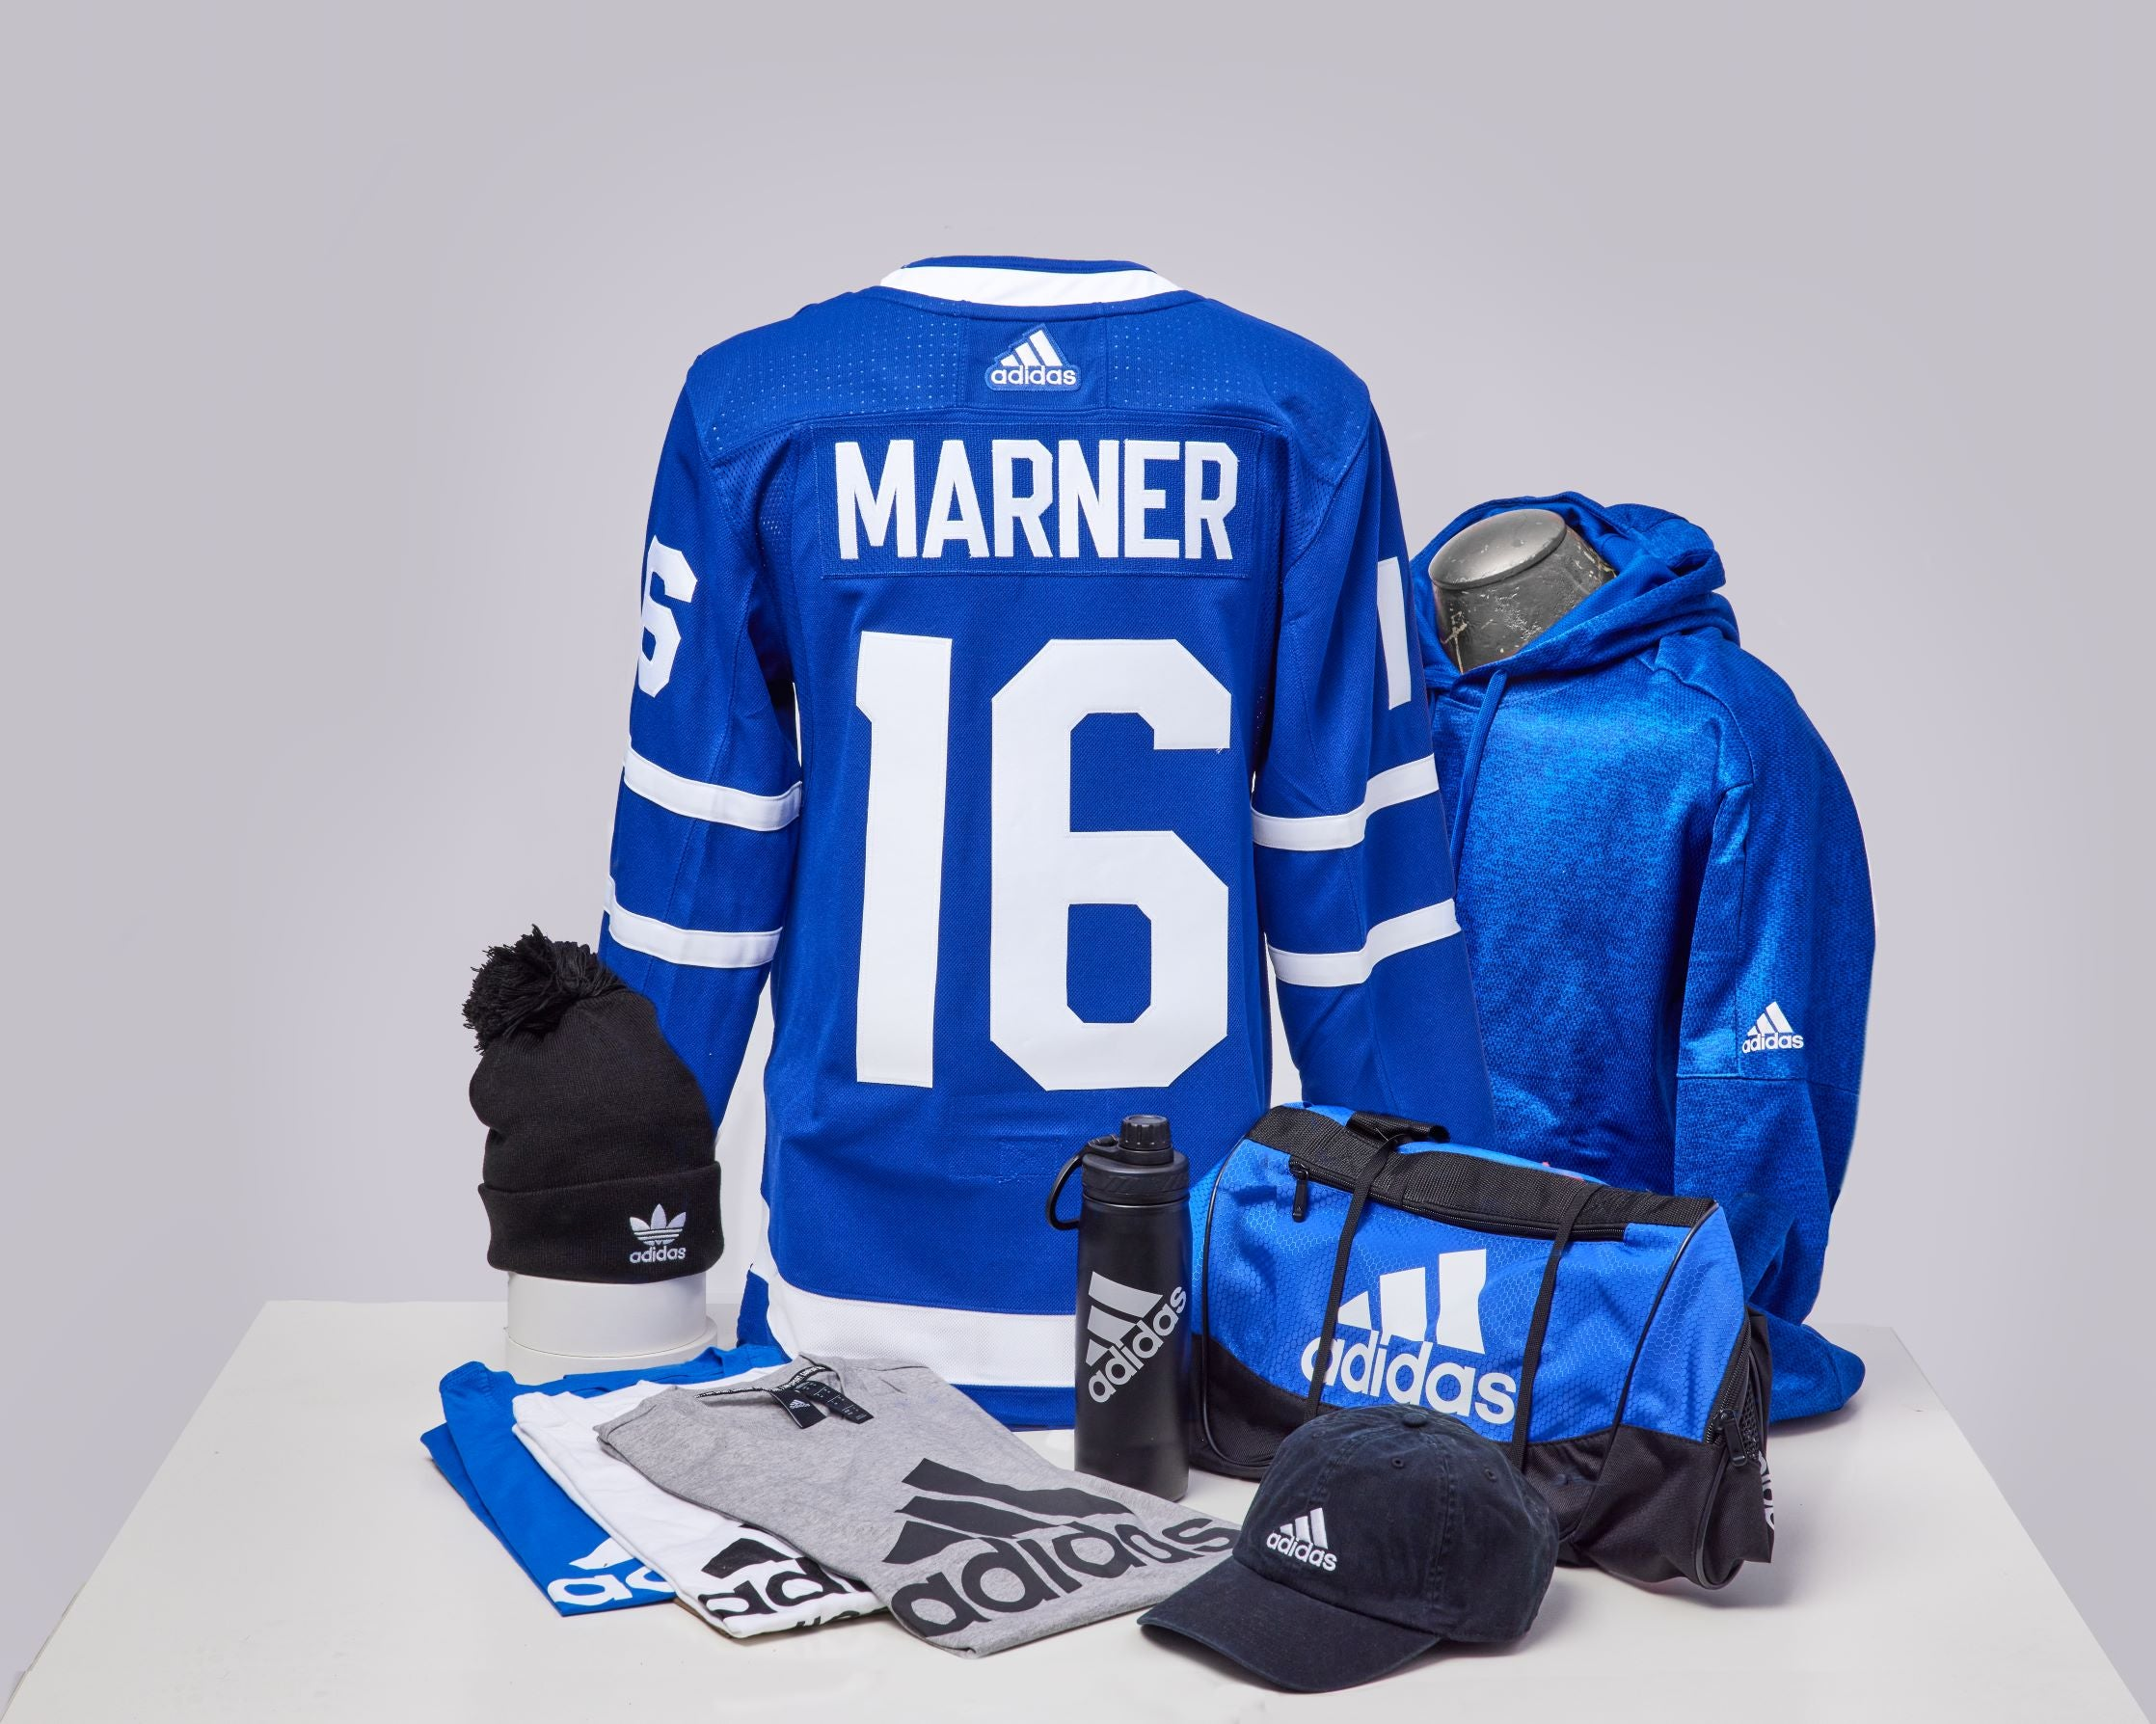 Maple Leafs Adidas Authentic Men's Home Jersey + Adidas Pack - MARNER